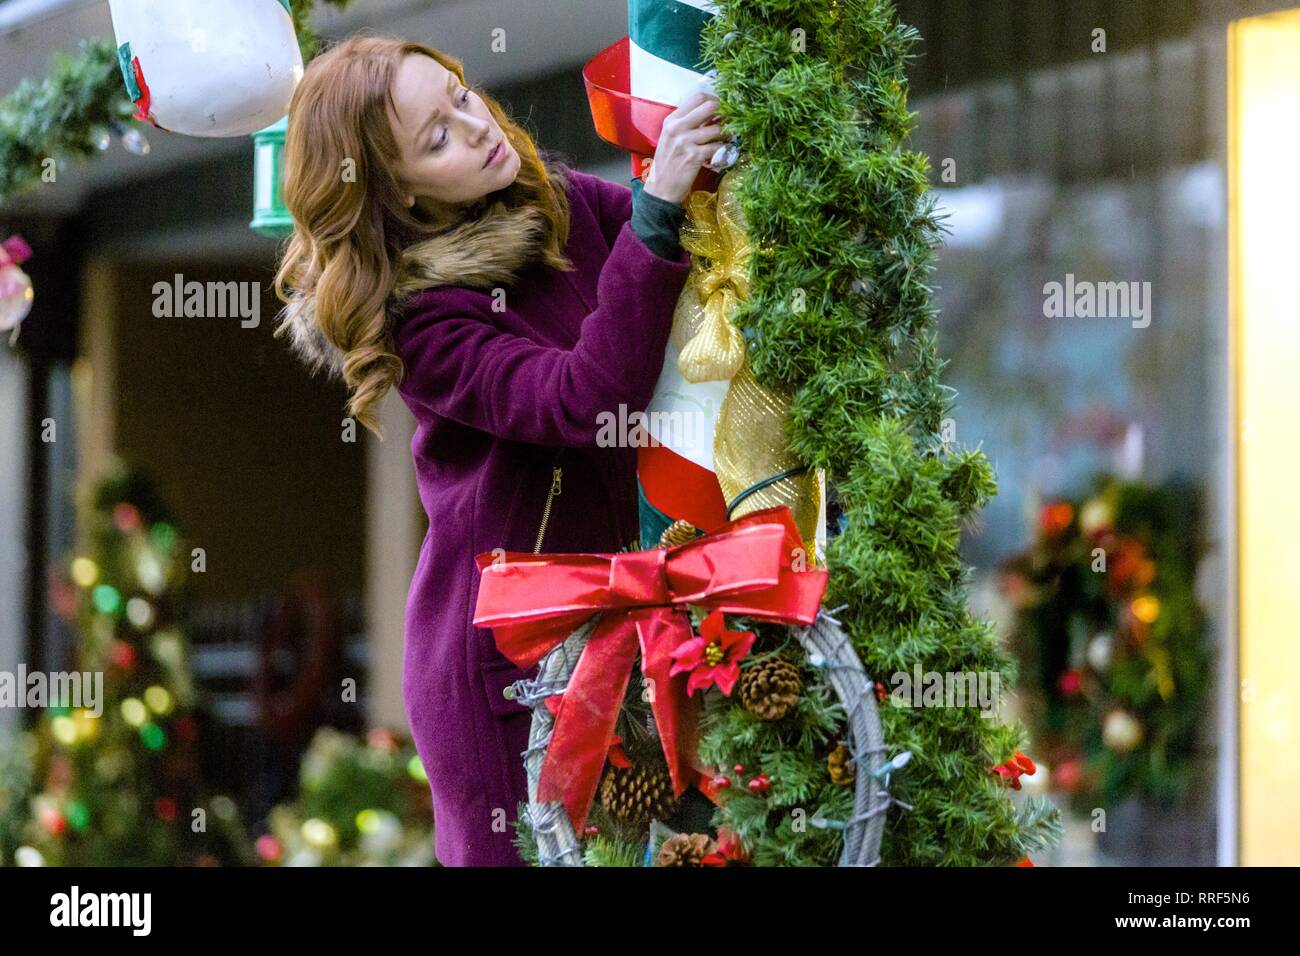 ROCKY MOUNTAIN CHRISTMAS, LINDY BOOTH, 2017 - Stock Image